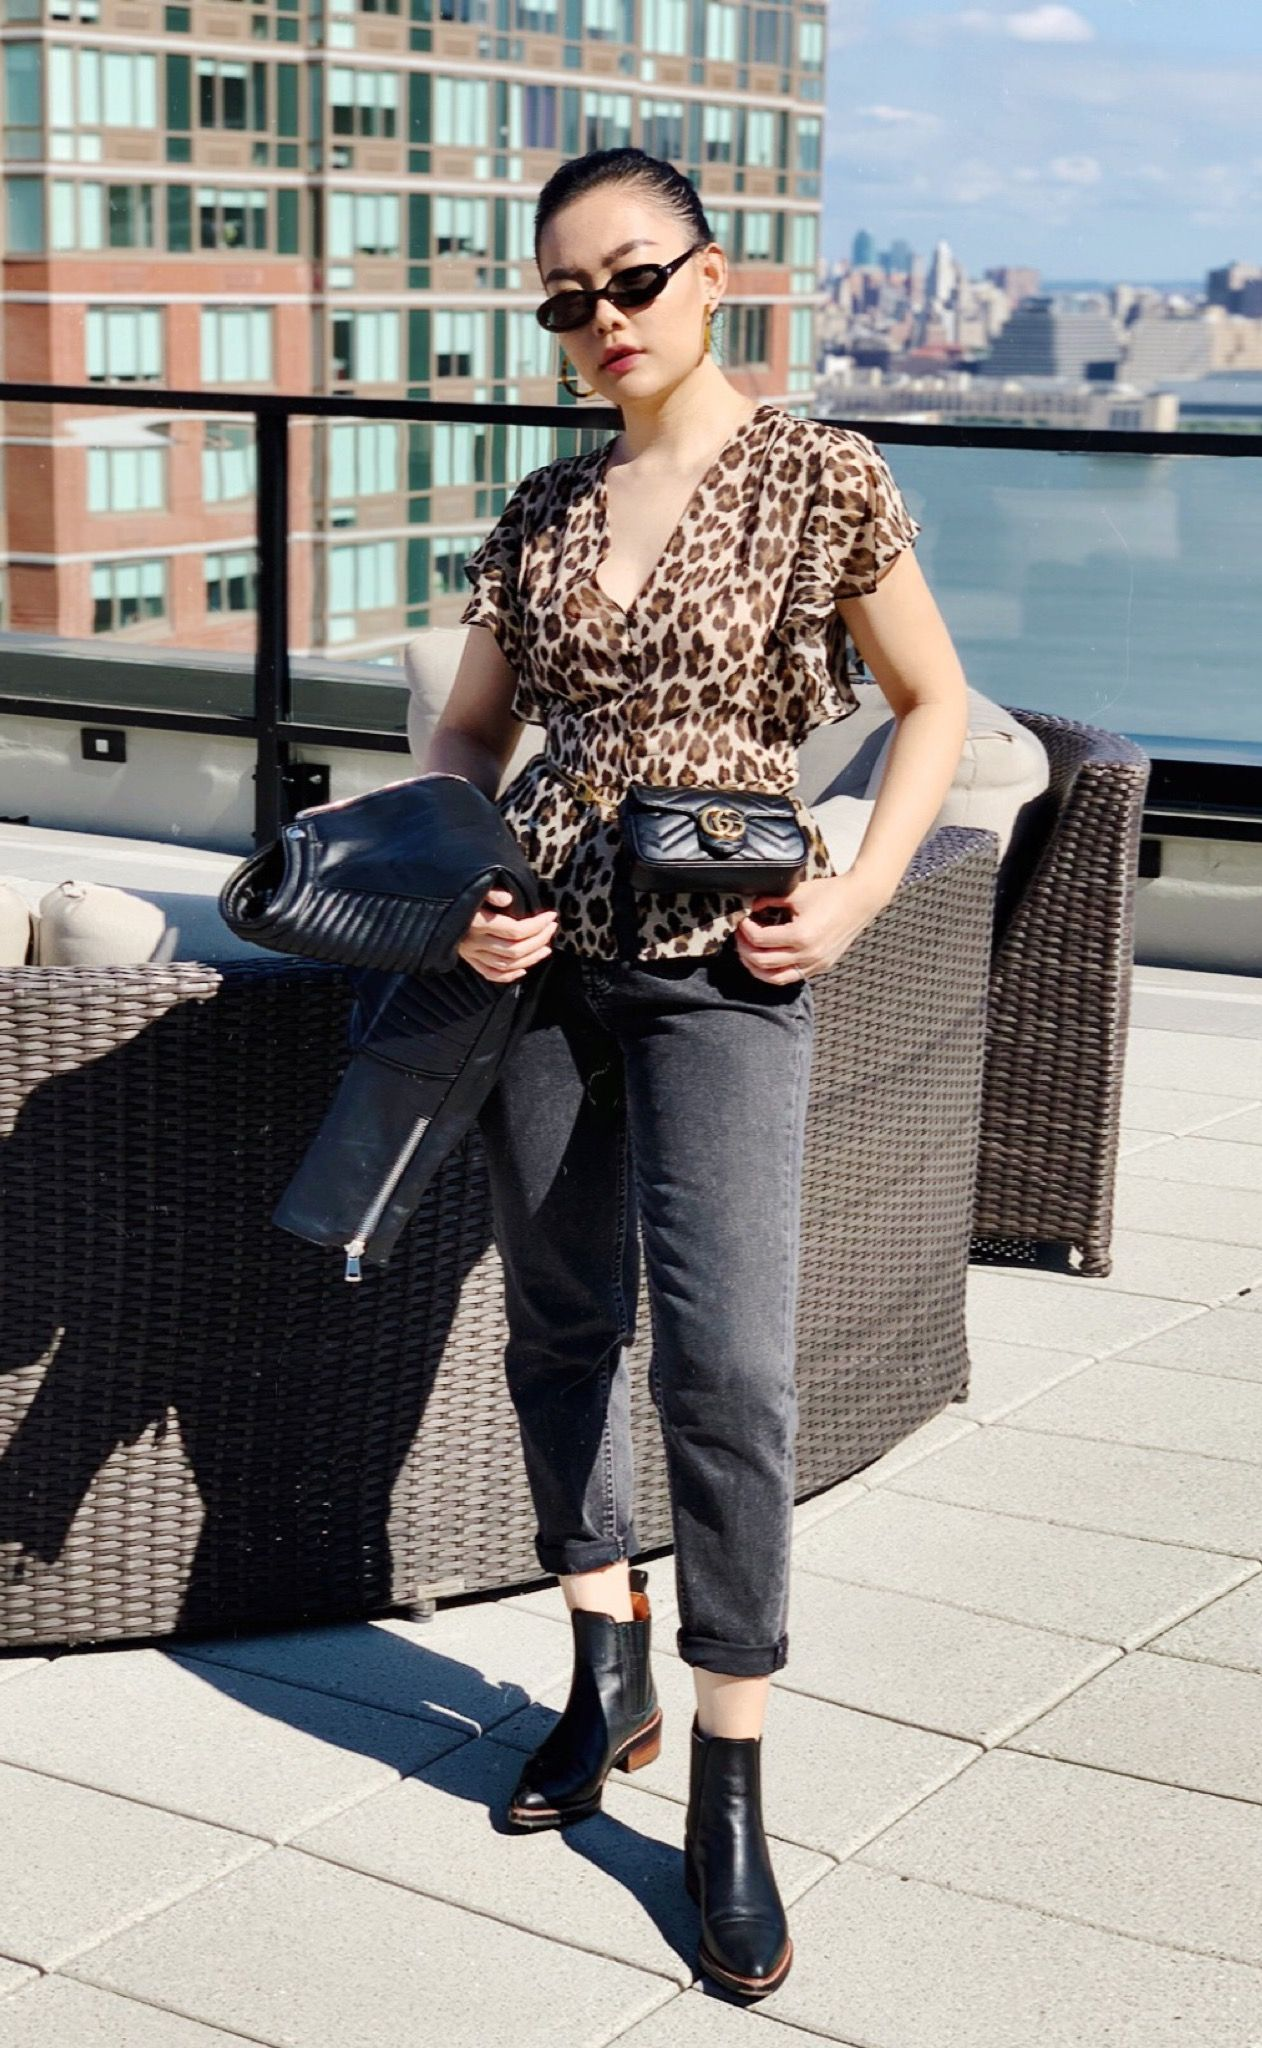 black mom jeans outfit with leopard print flattering top